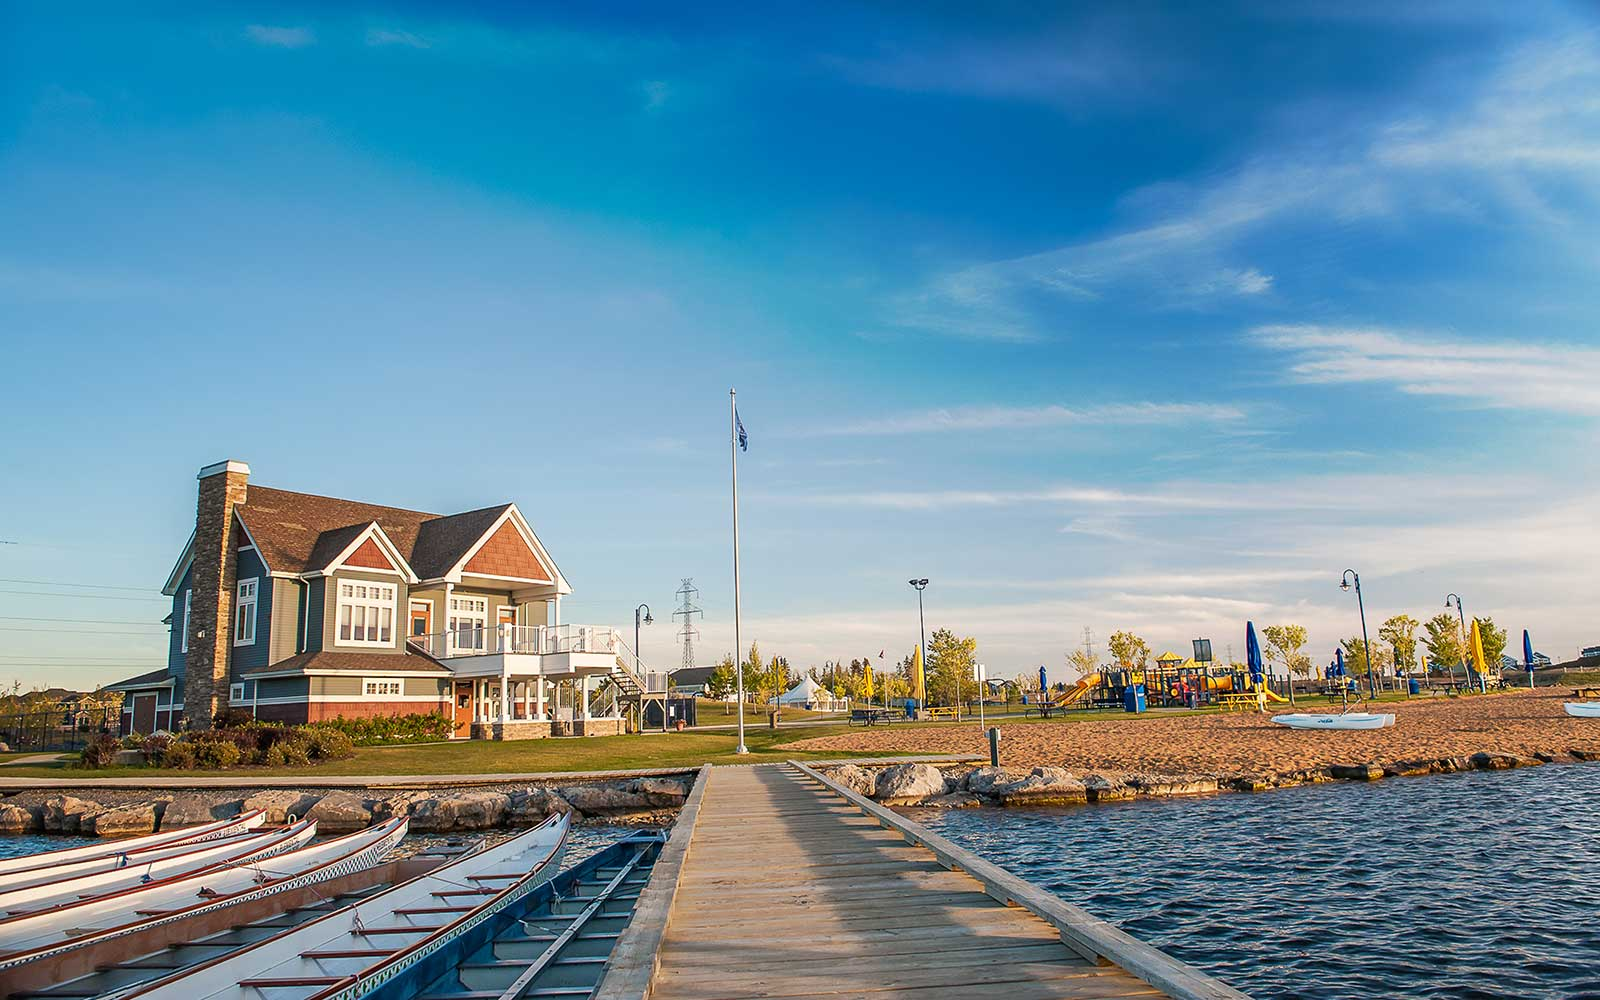 beach-house-in-lake-summerside-edmonton-alberta